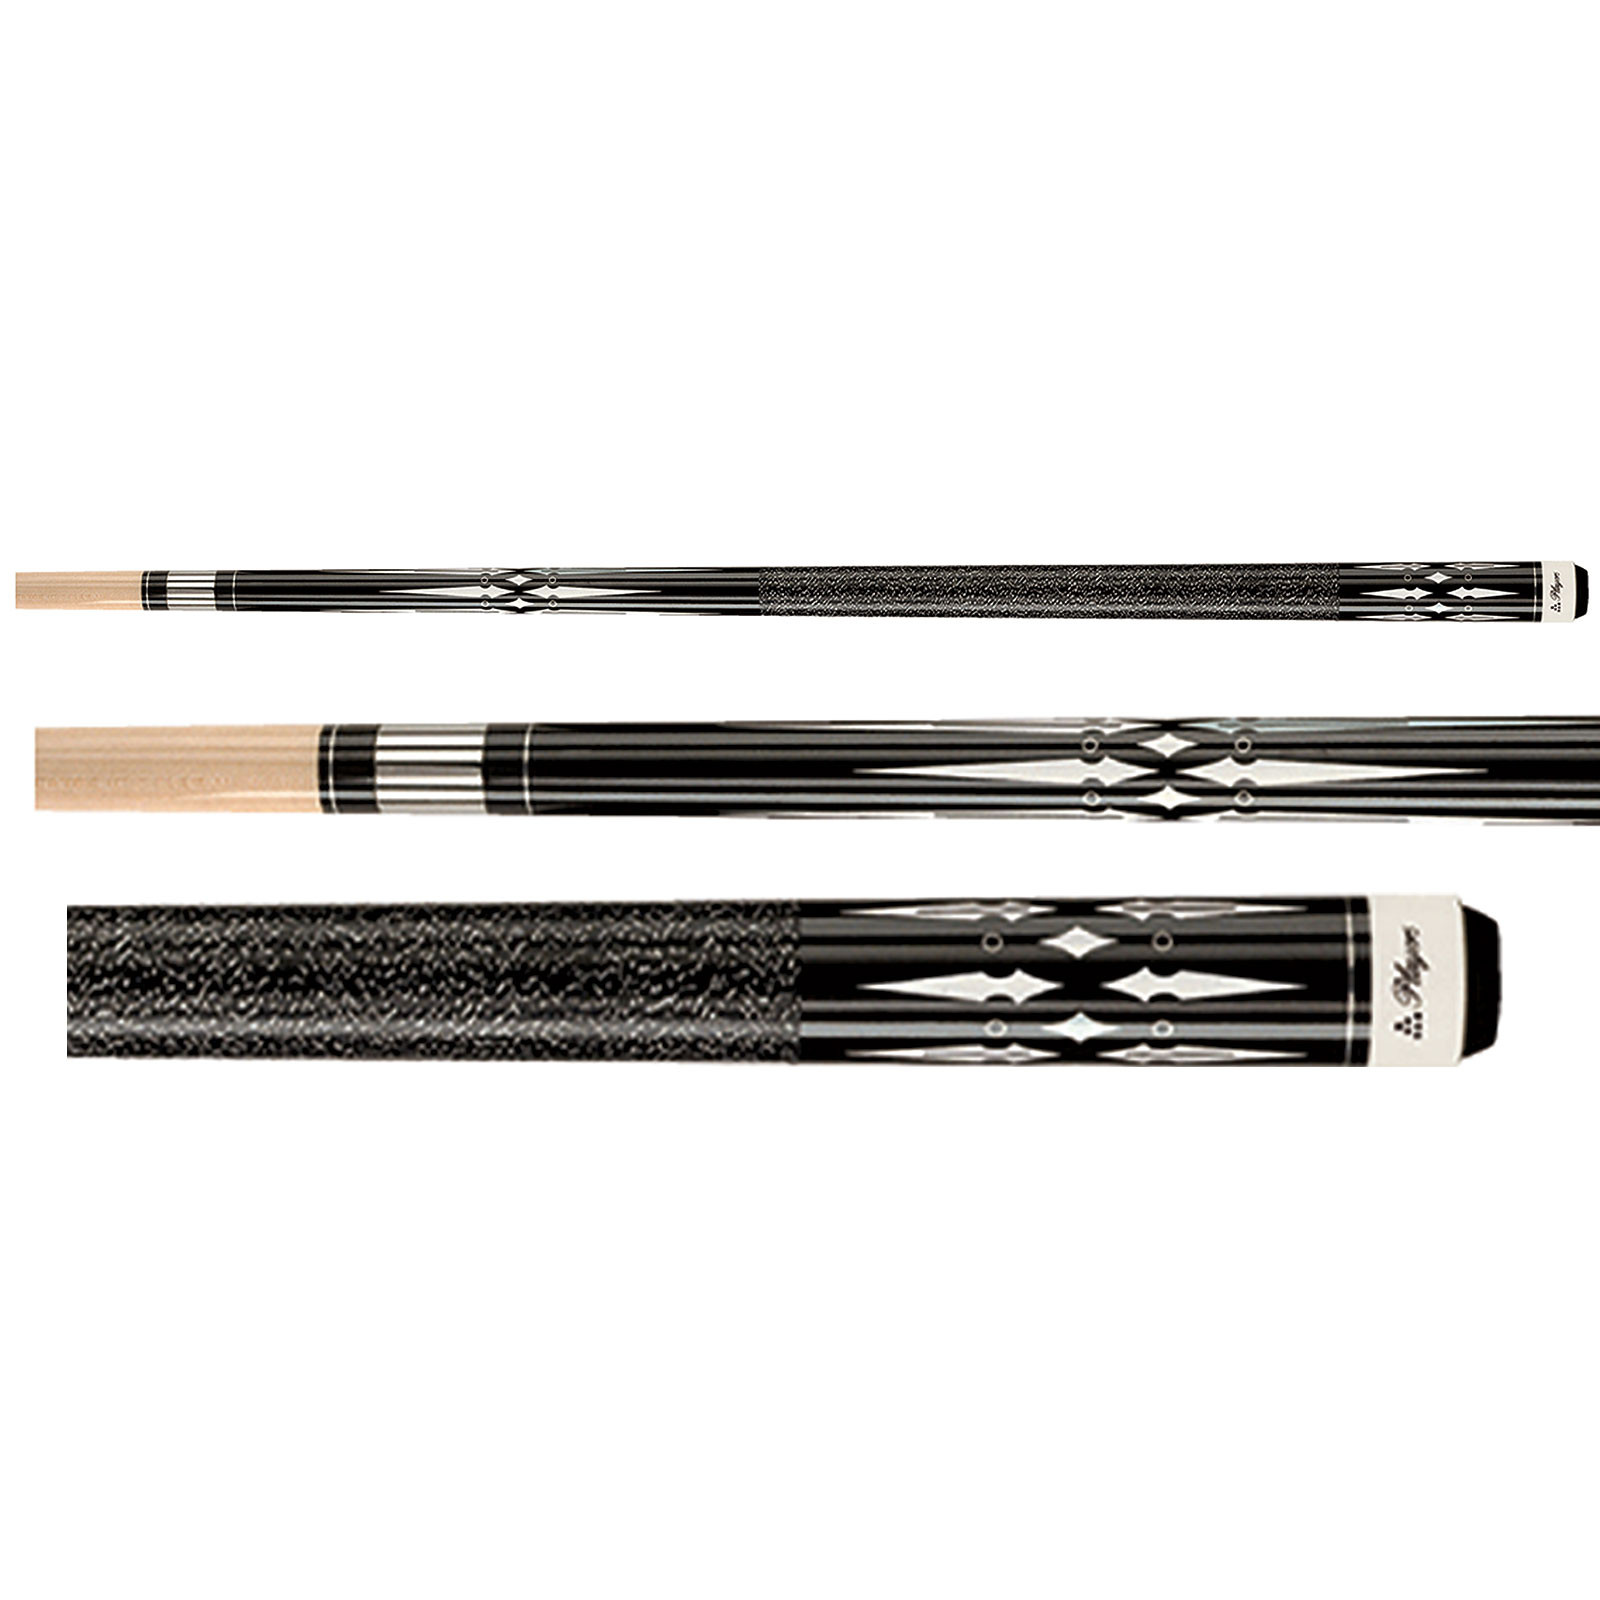 Players G-21BD Black Pool Cue Stick